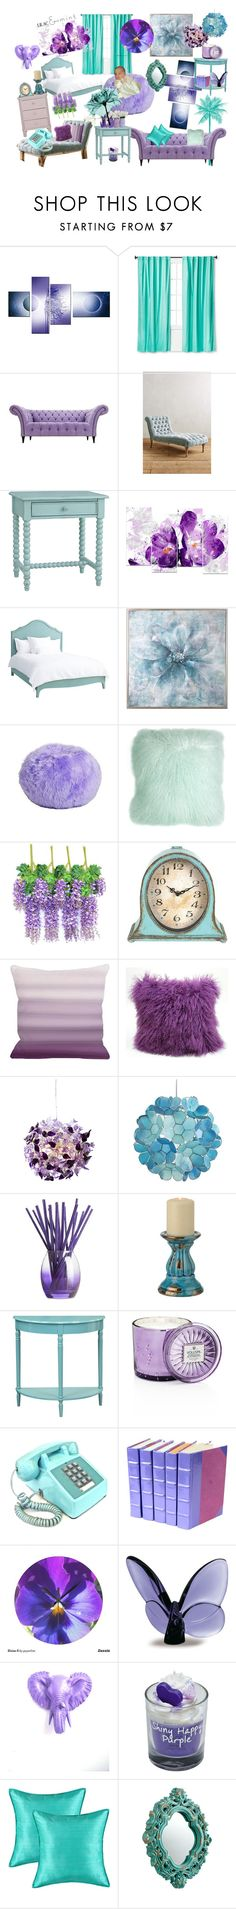 """""""Lilac & Mint Home"""" by dream82 ❤ liked on Polyvore featuring interior, interiors, interior design, home, home decor, interior decorating, Pillowfort, Anthropologie, Redford House and Uttermost"""